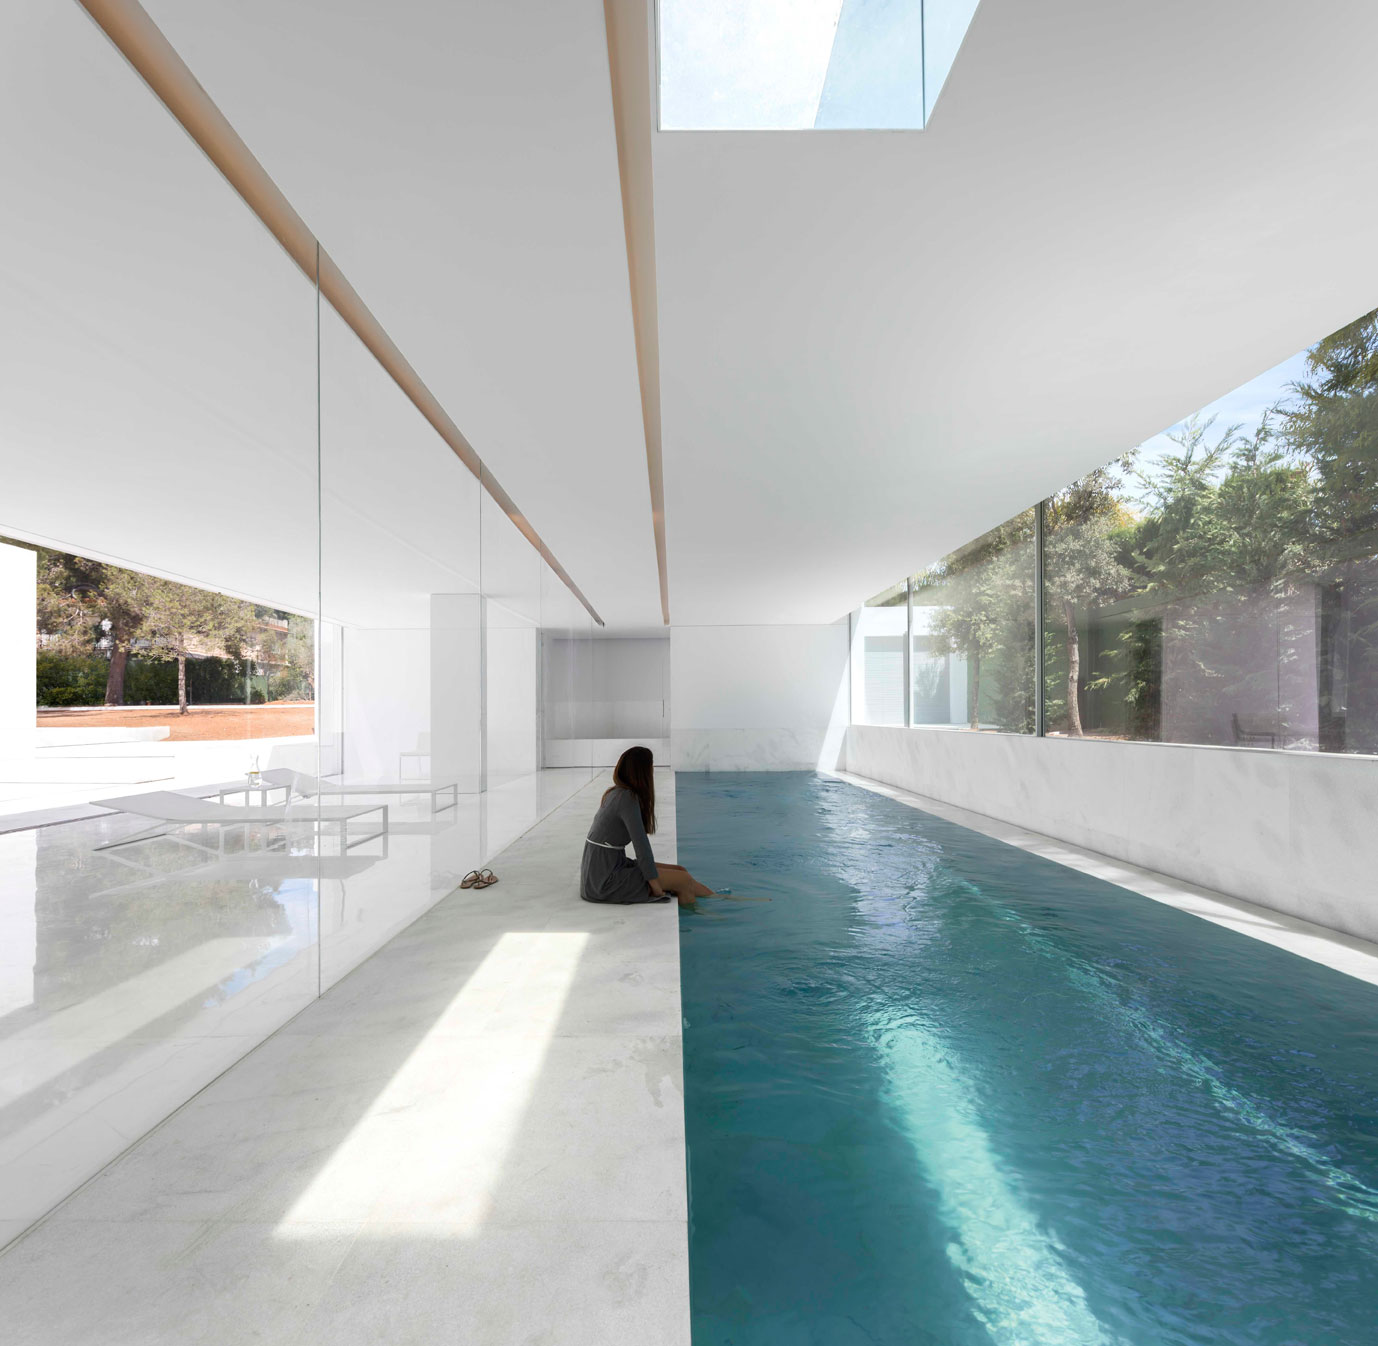 dissenycv-es-fran-silvestre-arquitectos_-house-betwwen-the-pine-forest_-19